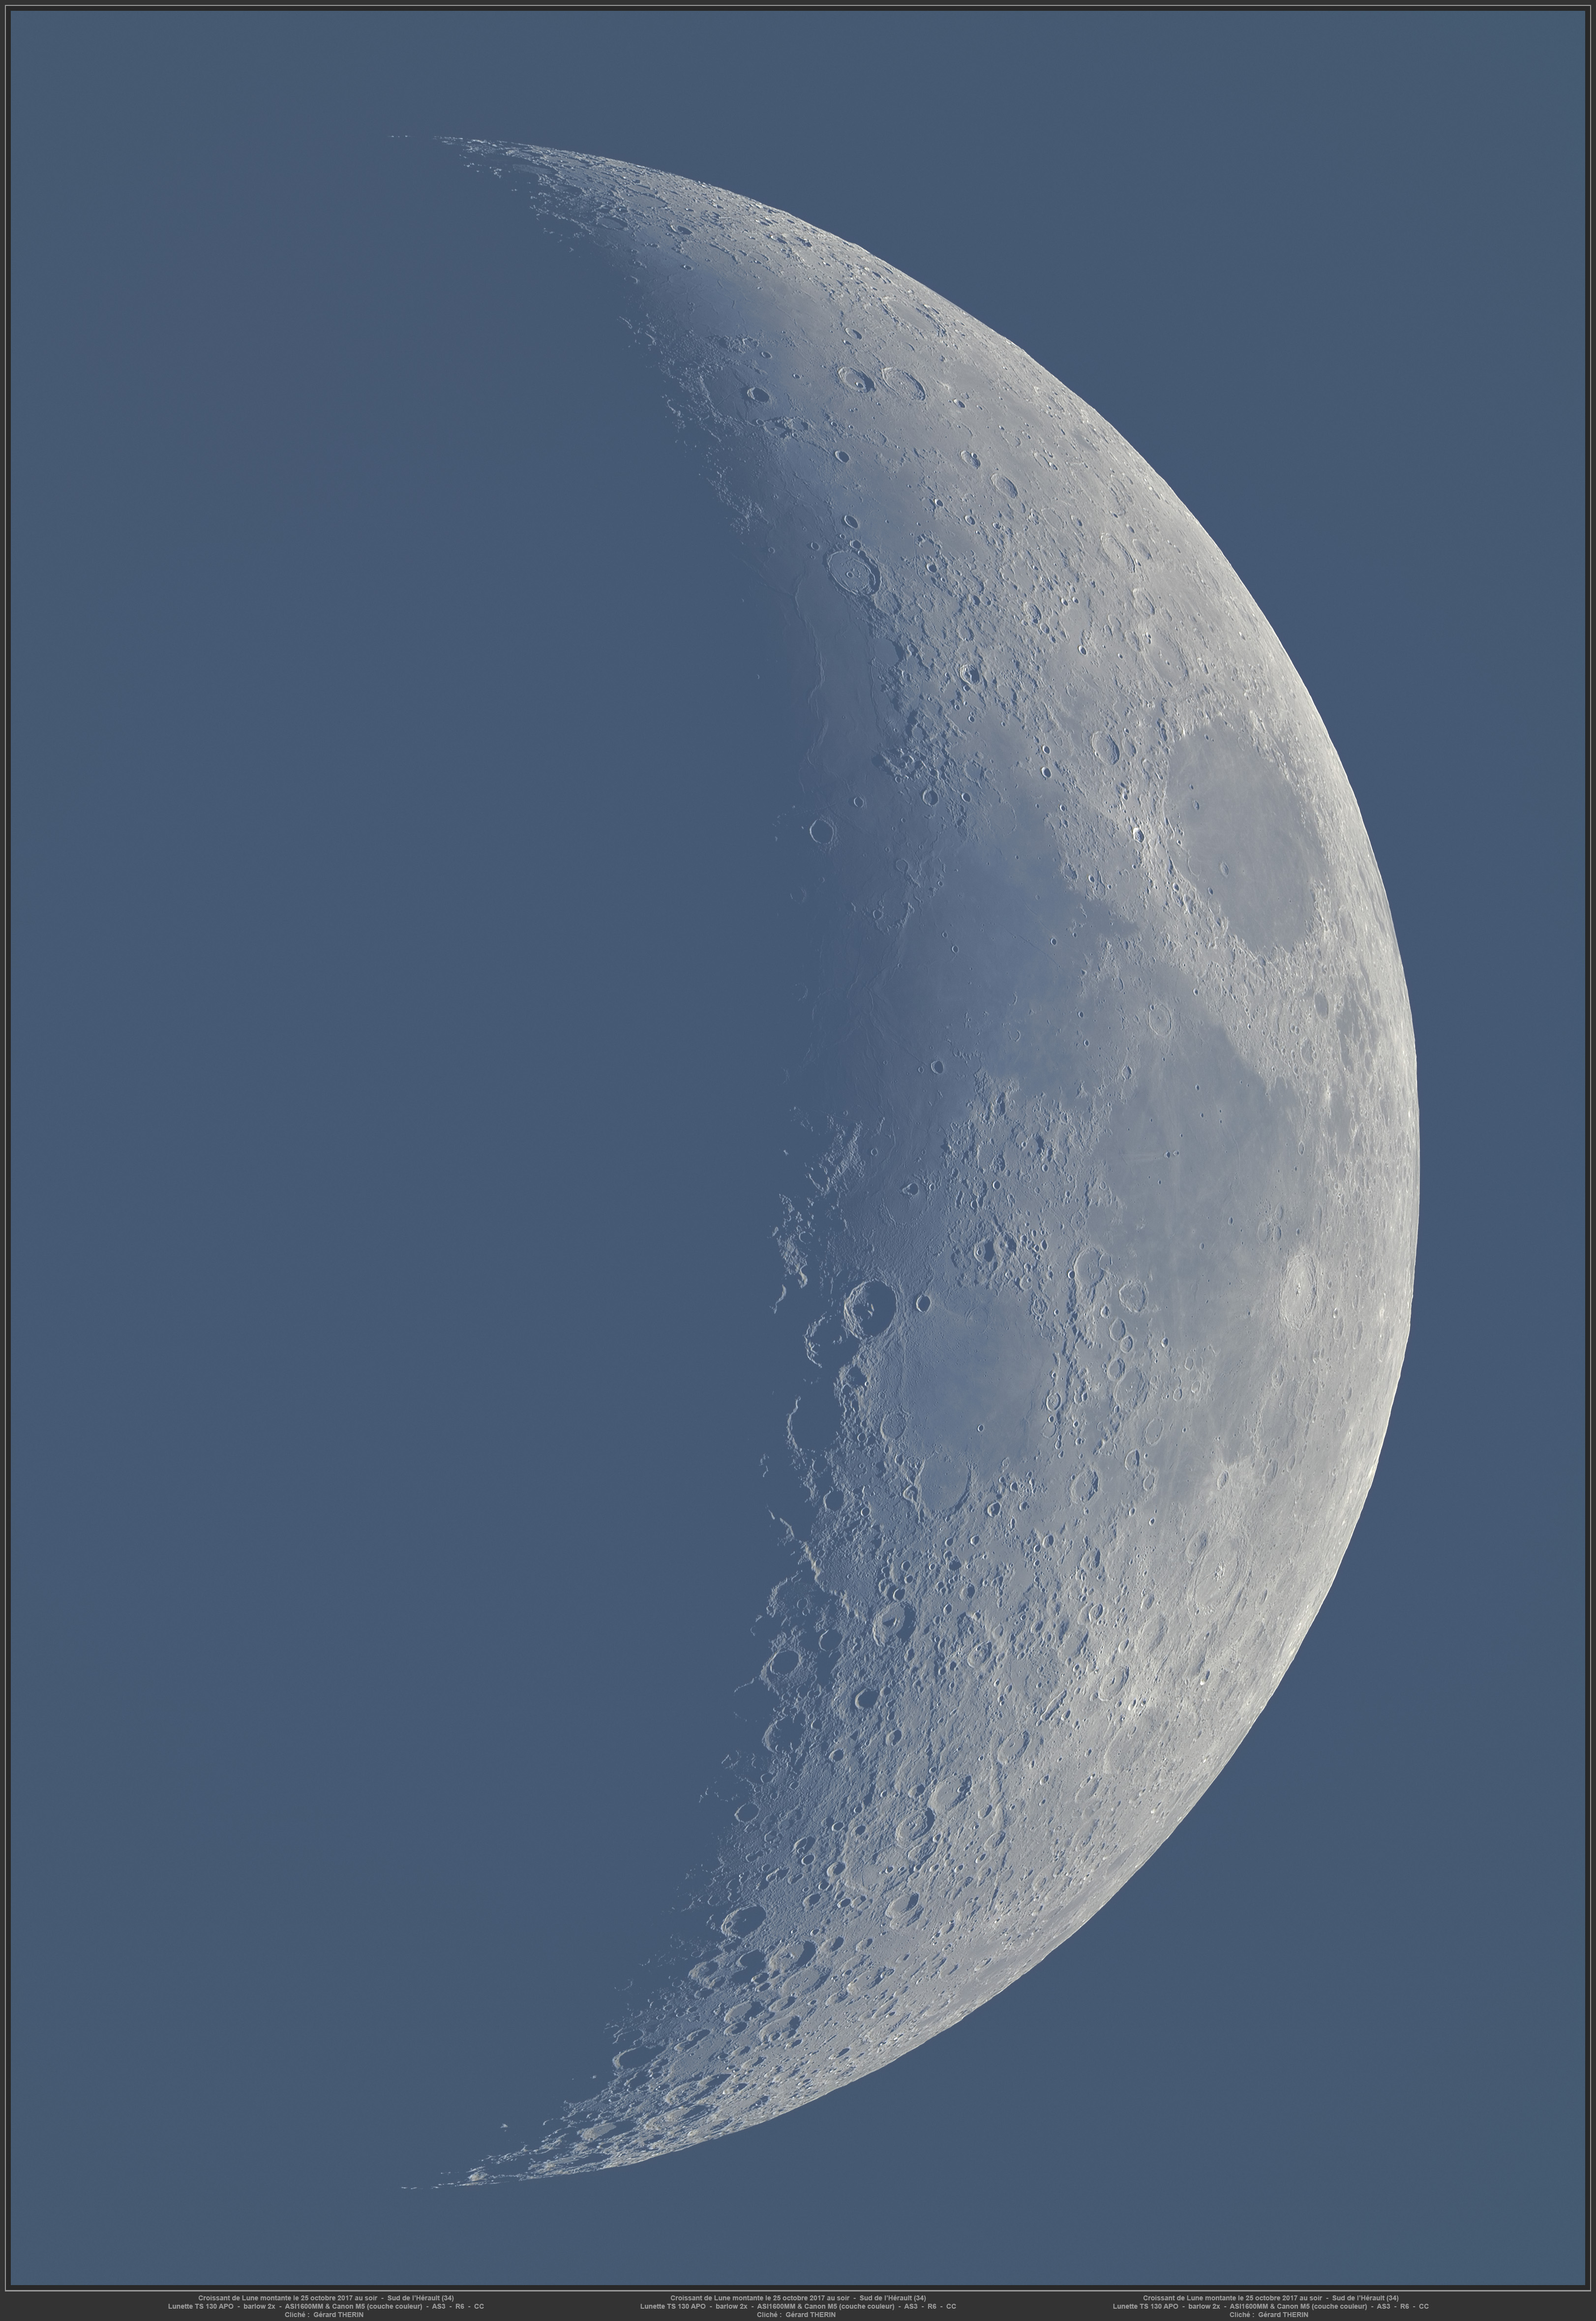 2017_10_25_croissant_lune_ts130_2x_asi16